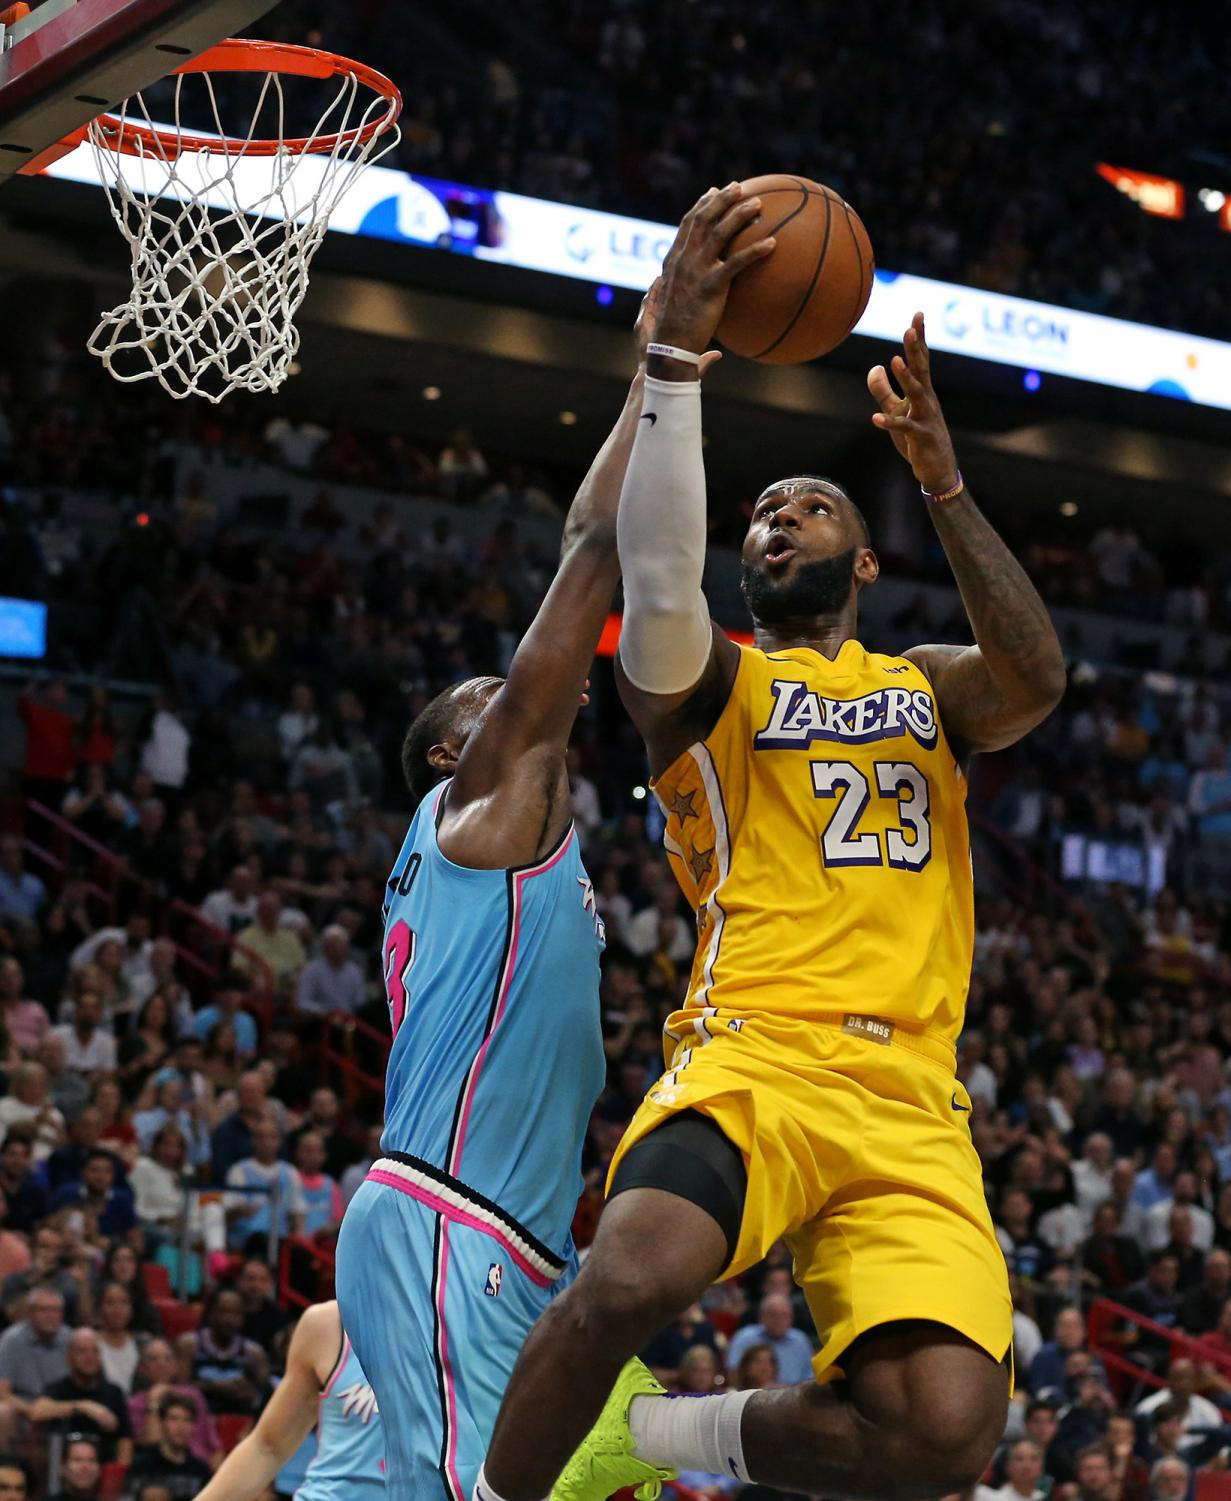 The Los Angeles Lakers' LeBron James (23) goes to the basket against the Miami Heat's Bam Adebayo in the fourth quarter at the AmericanAirlines Arena in Miami on Friday, Dec. 13, 2019. The Lakers won, 113-110. (David Santiago/Miami Herald/TNS)